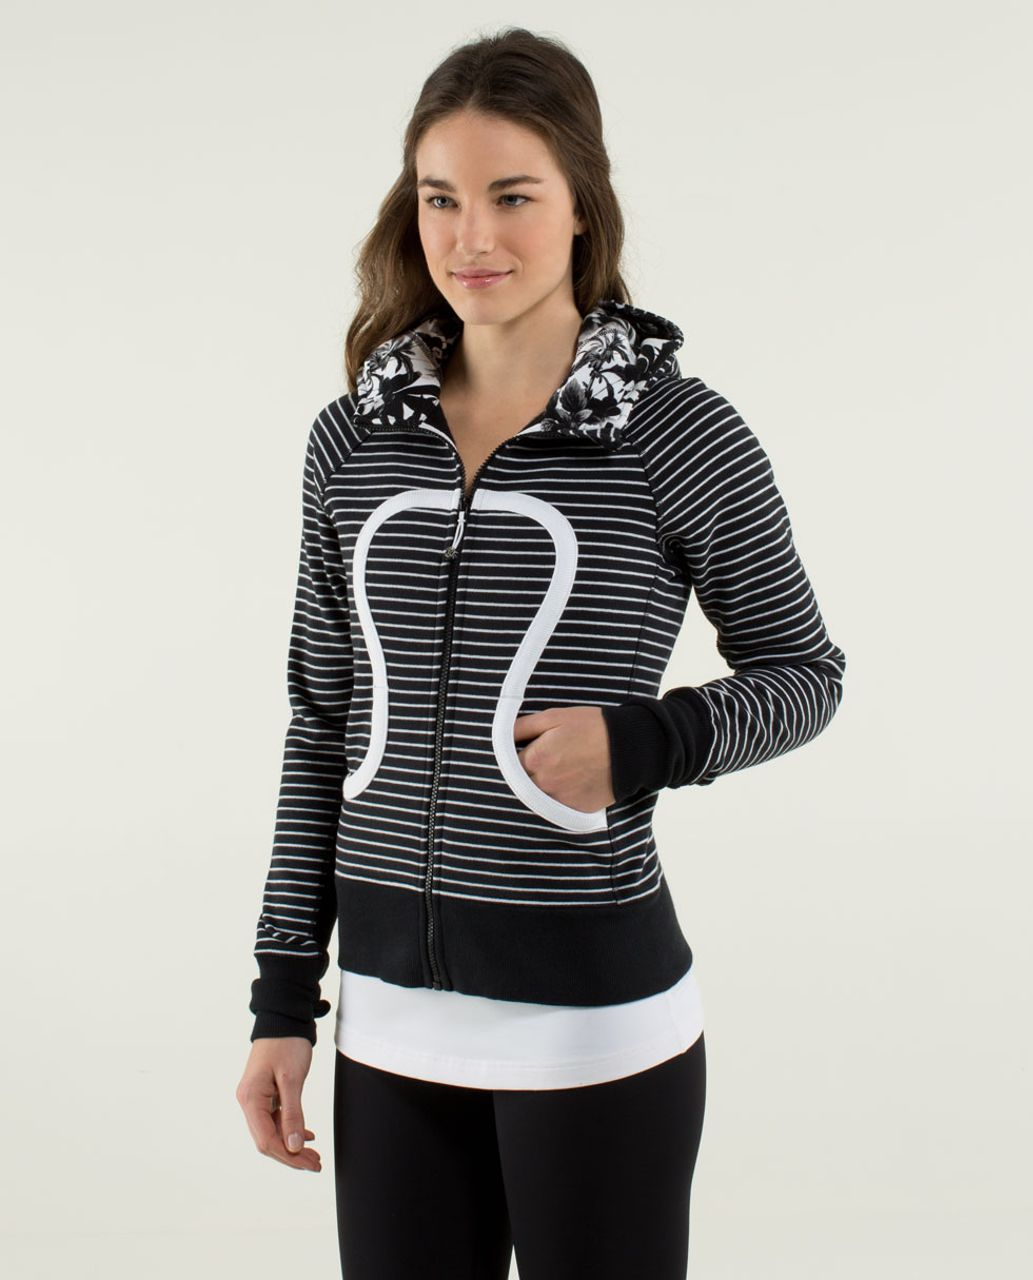 Lululemon Scuba Hoodie *Stretch (Lined Hood) - Parallel Stripe Black / White / Black / Brisk Bloom Black White / White / White